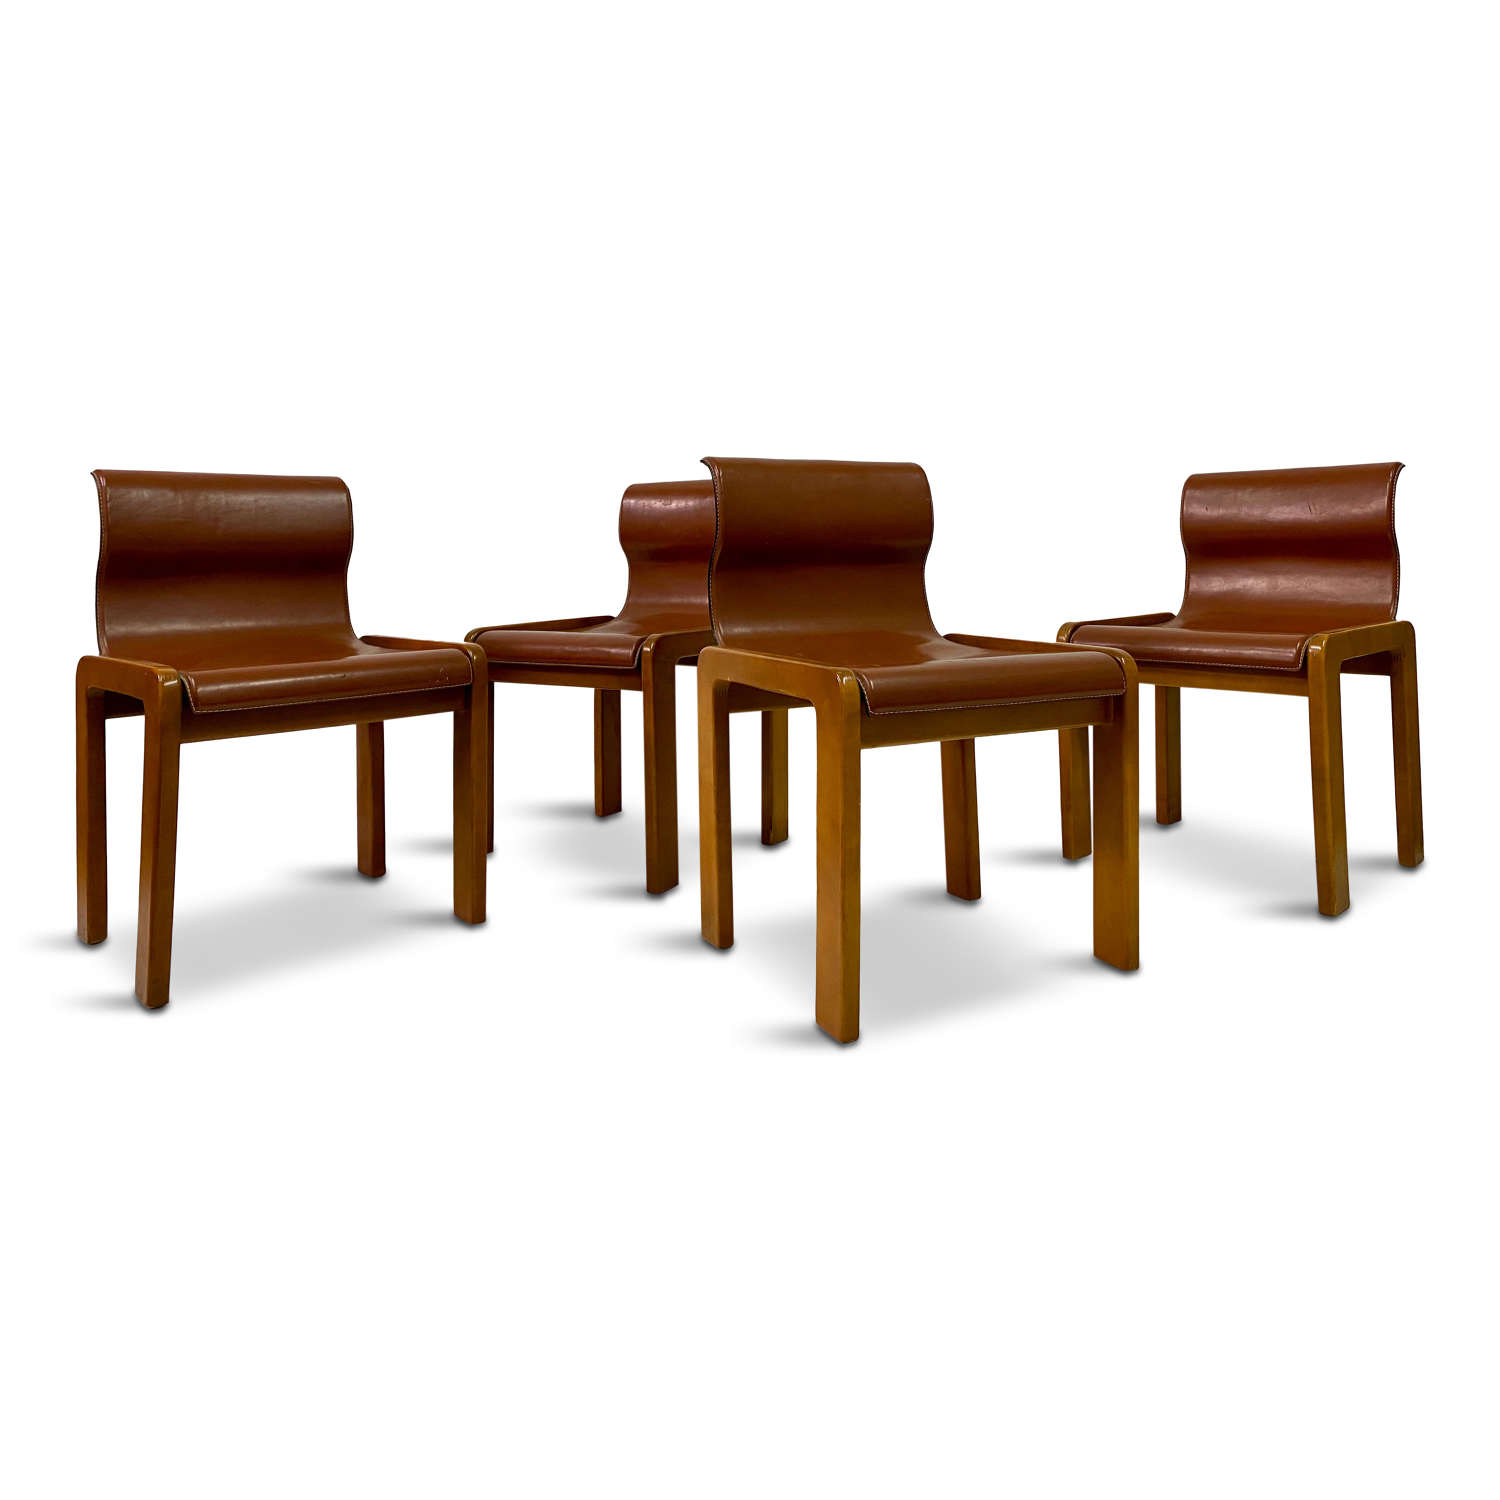 Four 1970s Italian Leather Dining Chairs Attributed to Tobia Scarpa